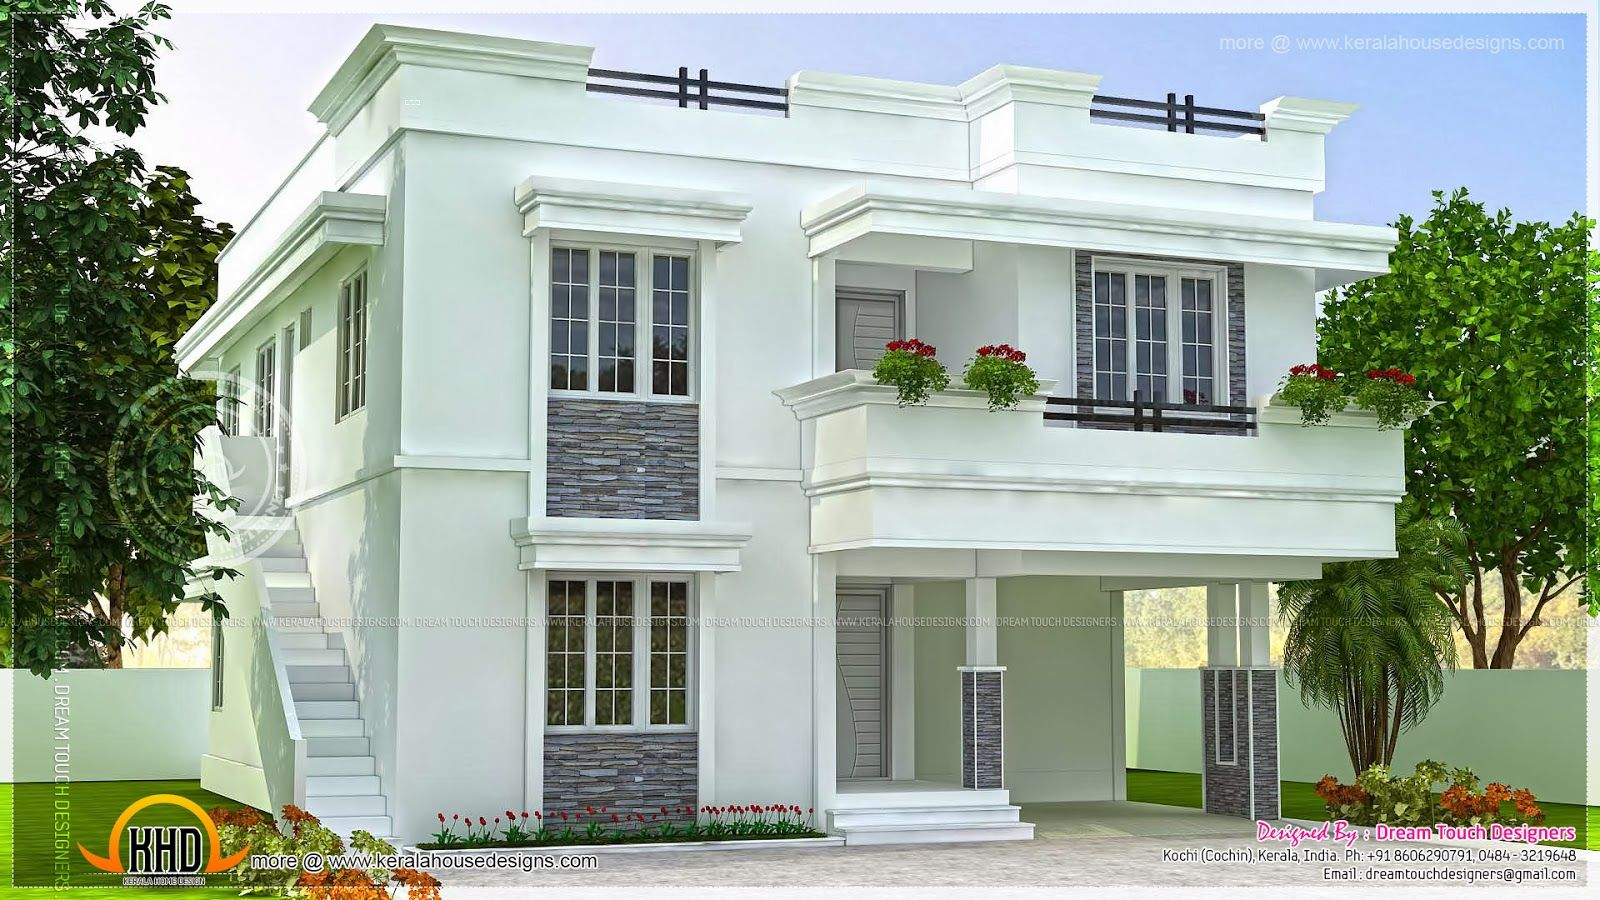 home design photo india house plan in modern style kerala home design and images small beautiful house plans india beautiful house interior designs in - Interior And Exterior House Design